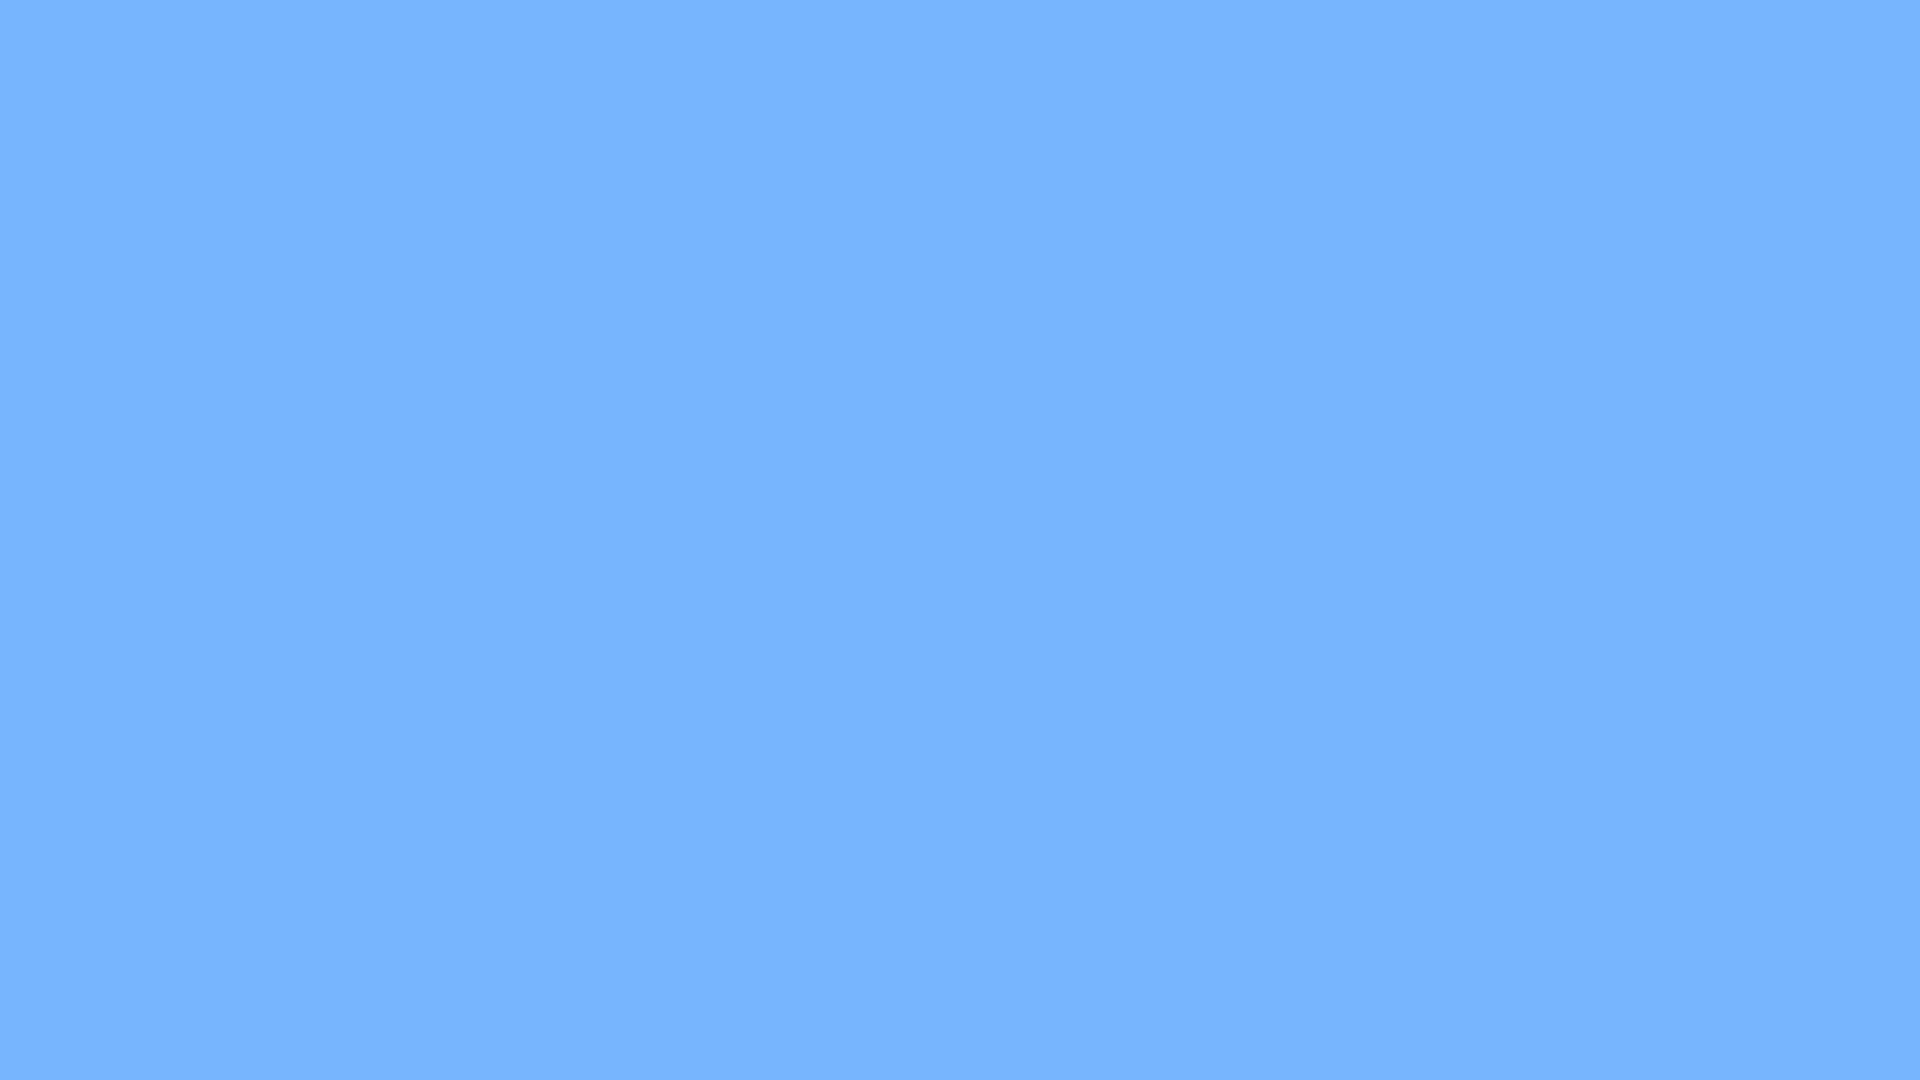 1920x1080 French Sky Blue Solid Color Background